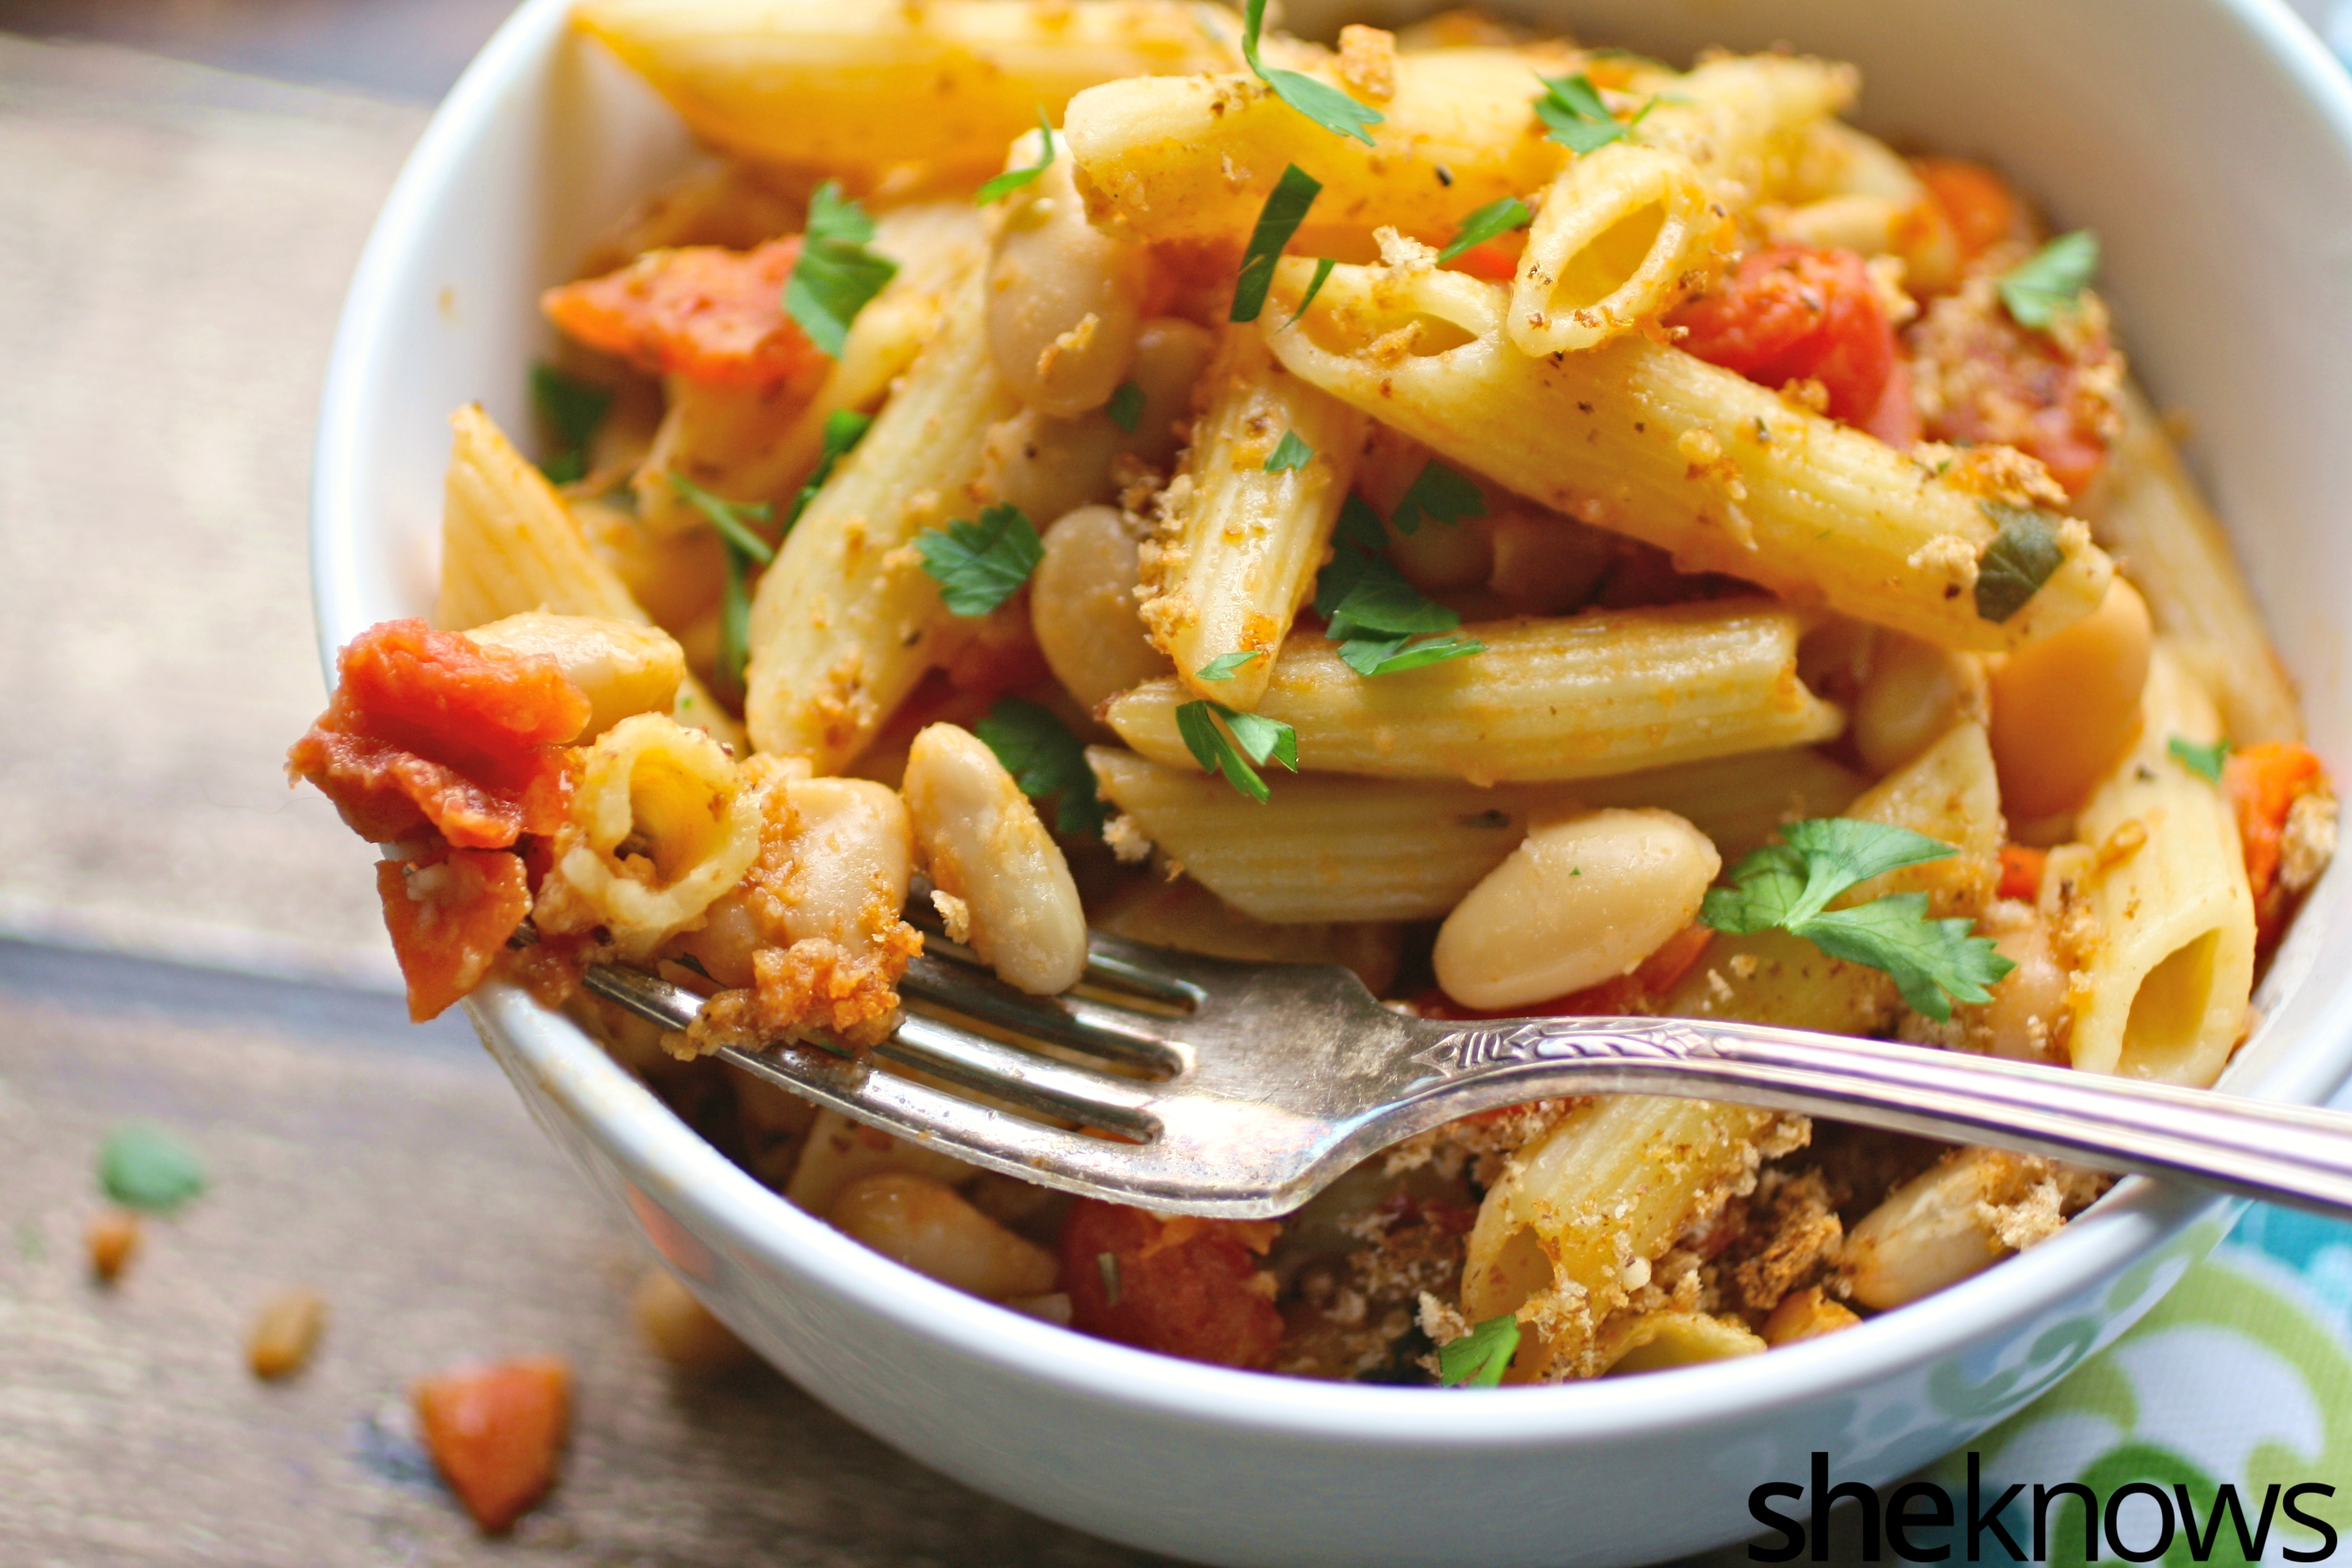 Dig into a bowl of baked pasta e fagioli for Meatless Monday